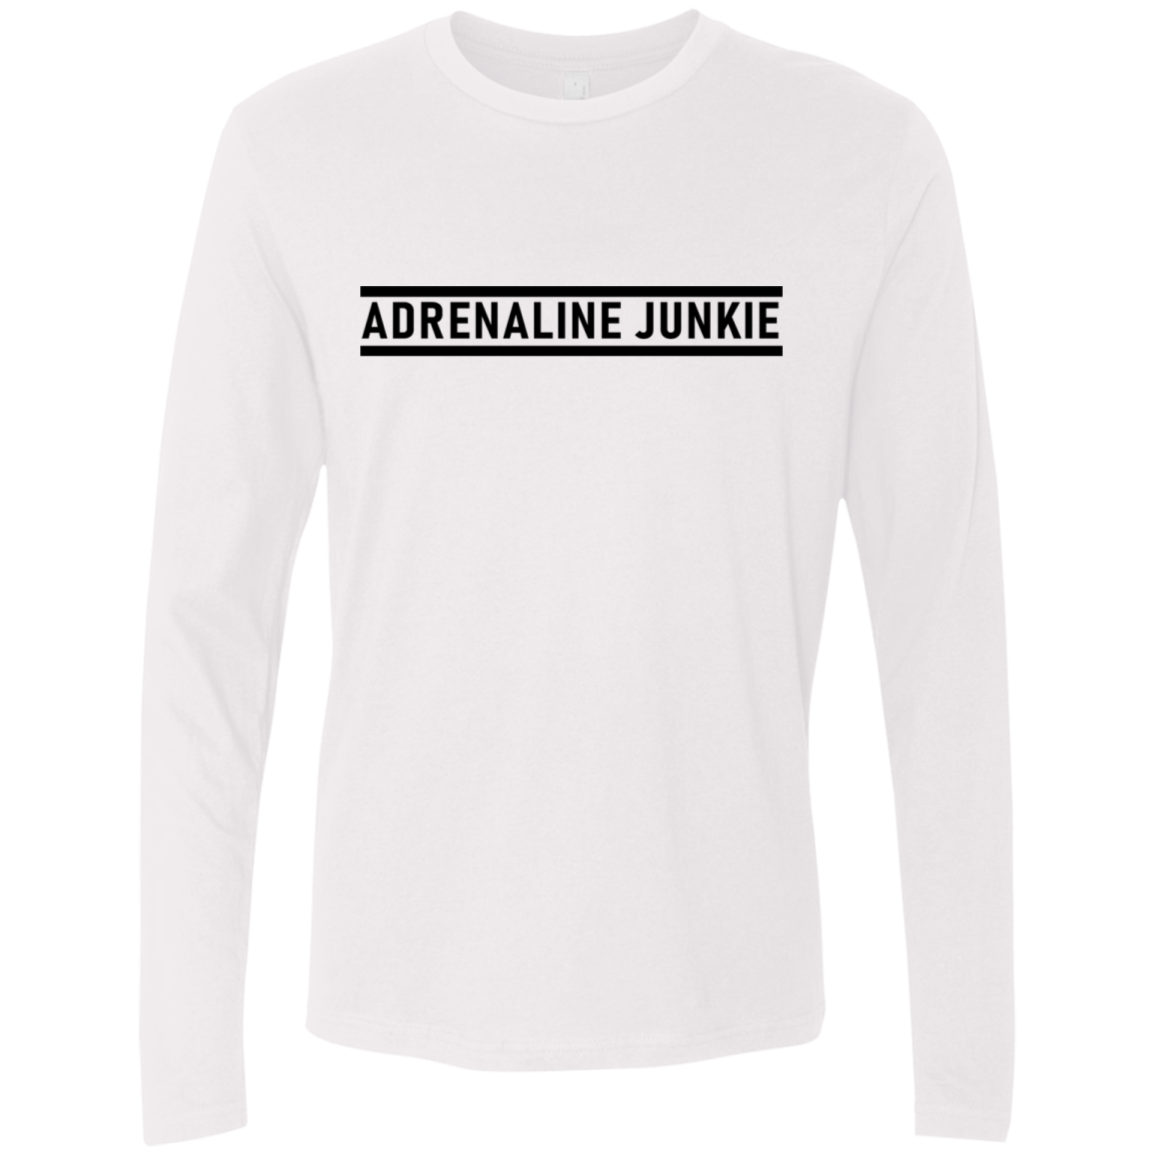 Adrenaline Junkie Men's Long Sleeve Tee